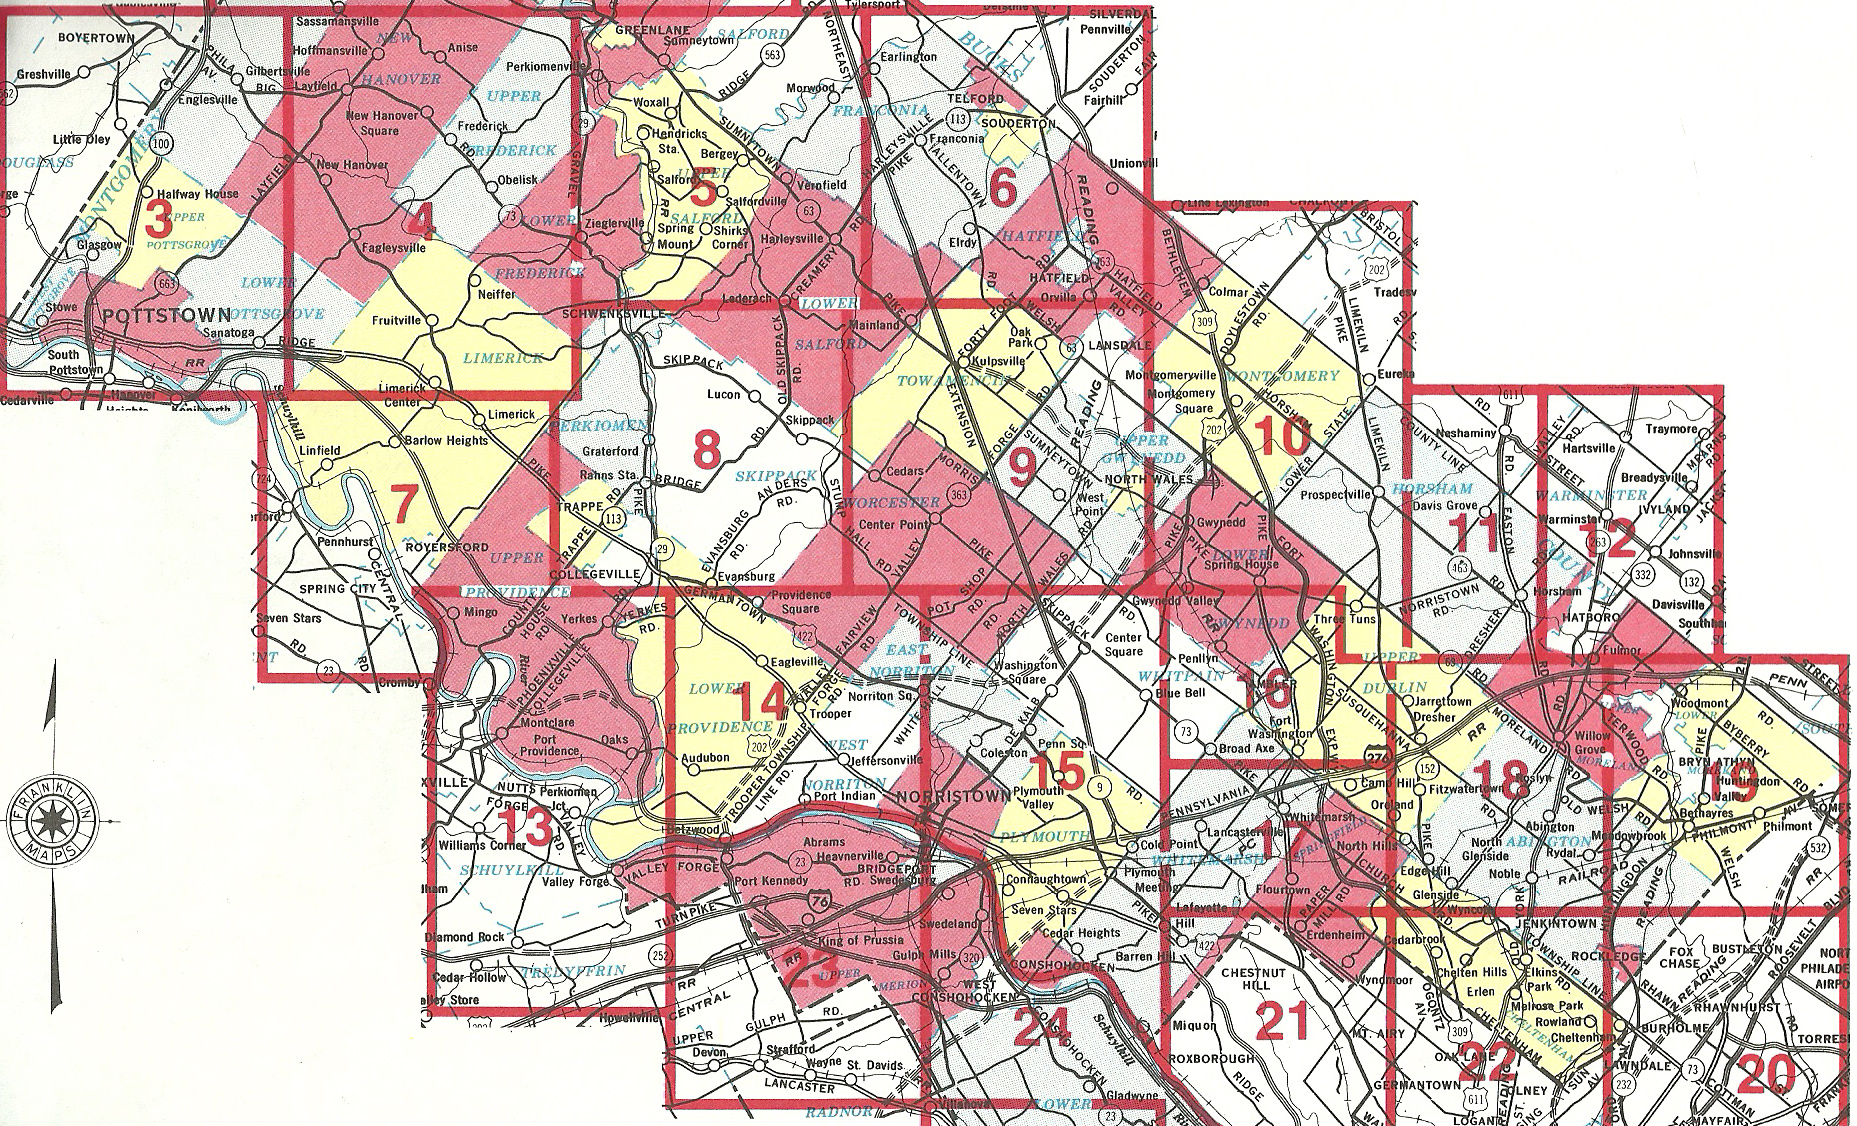 1991 Bucks County, PA Map Scans on harris county tx map, montgomery county subdivision, new york key map, montgomery county symbols, houston key map,